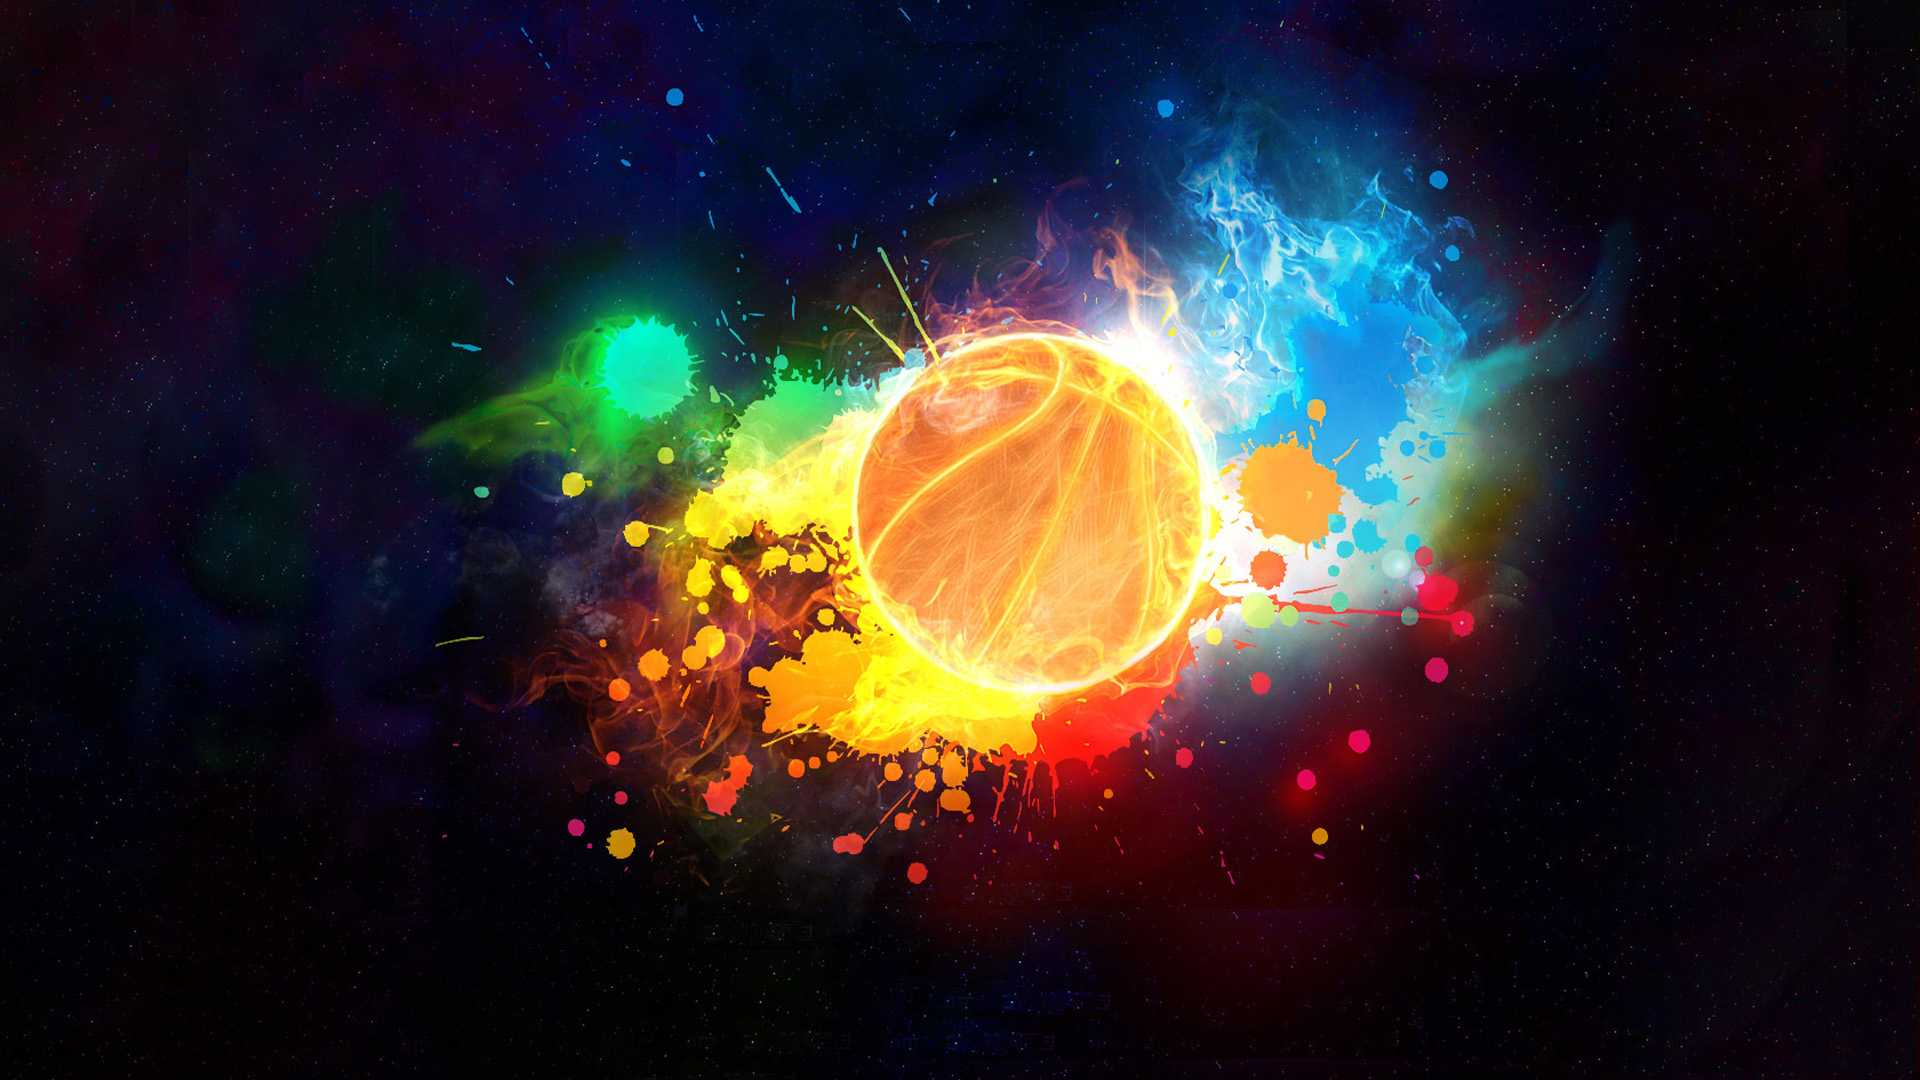 Basketball-cool-colorful-wallpaper-wpc9202784